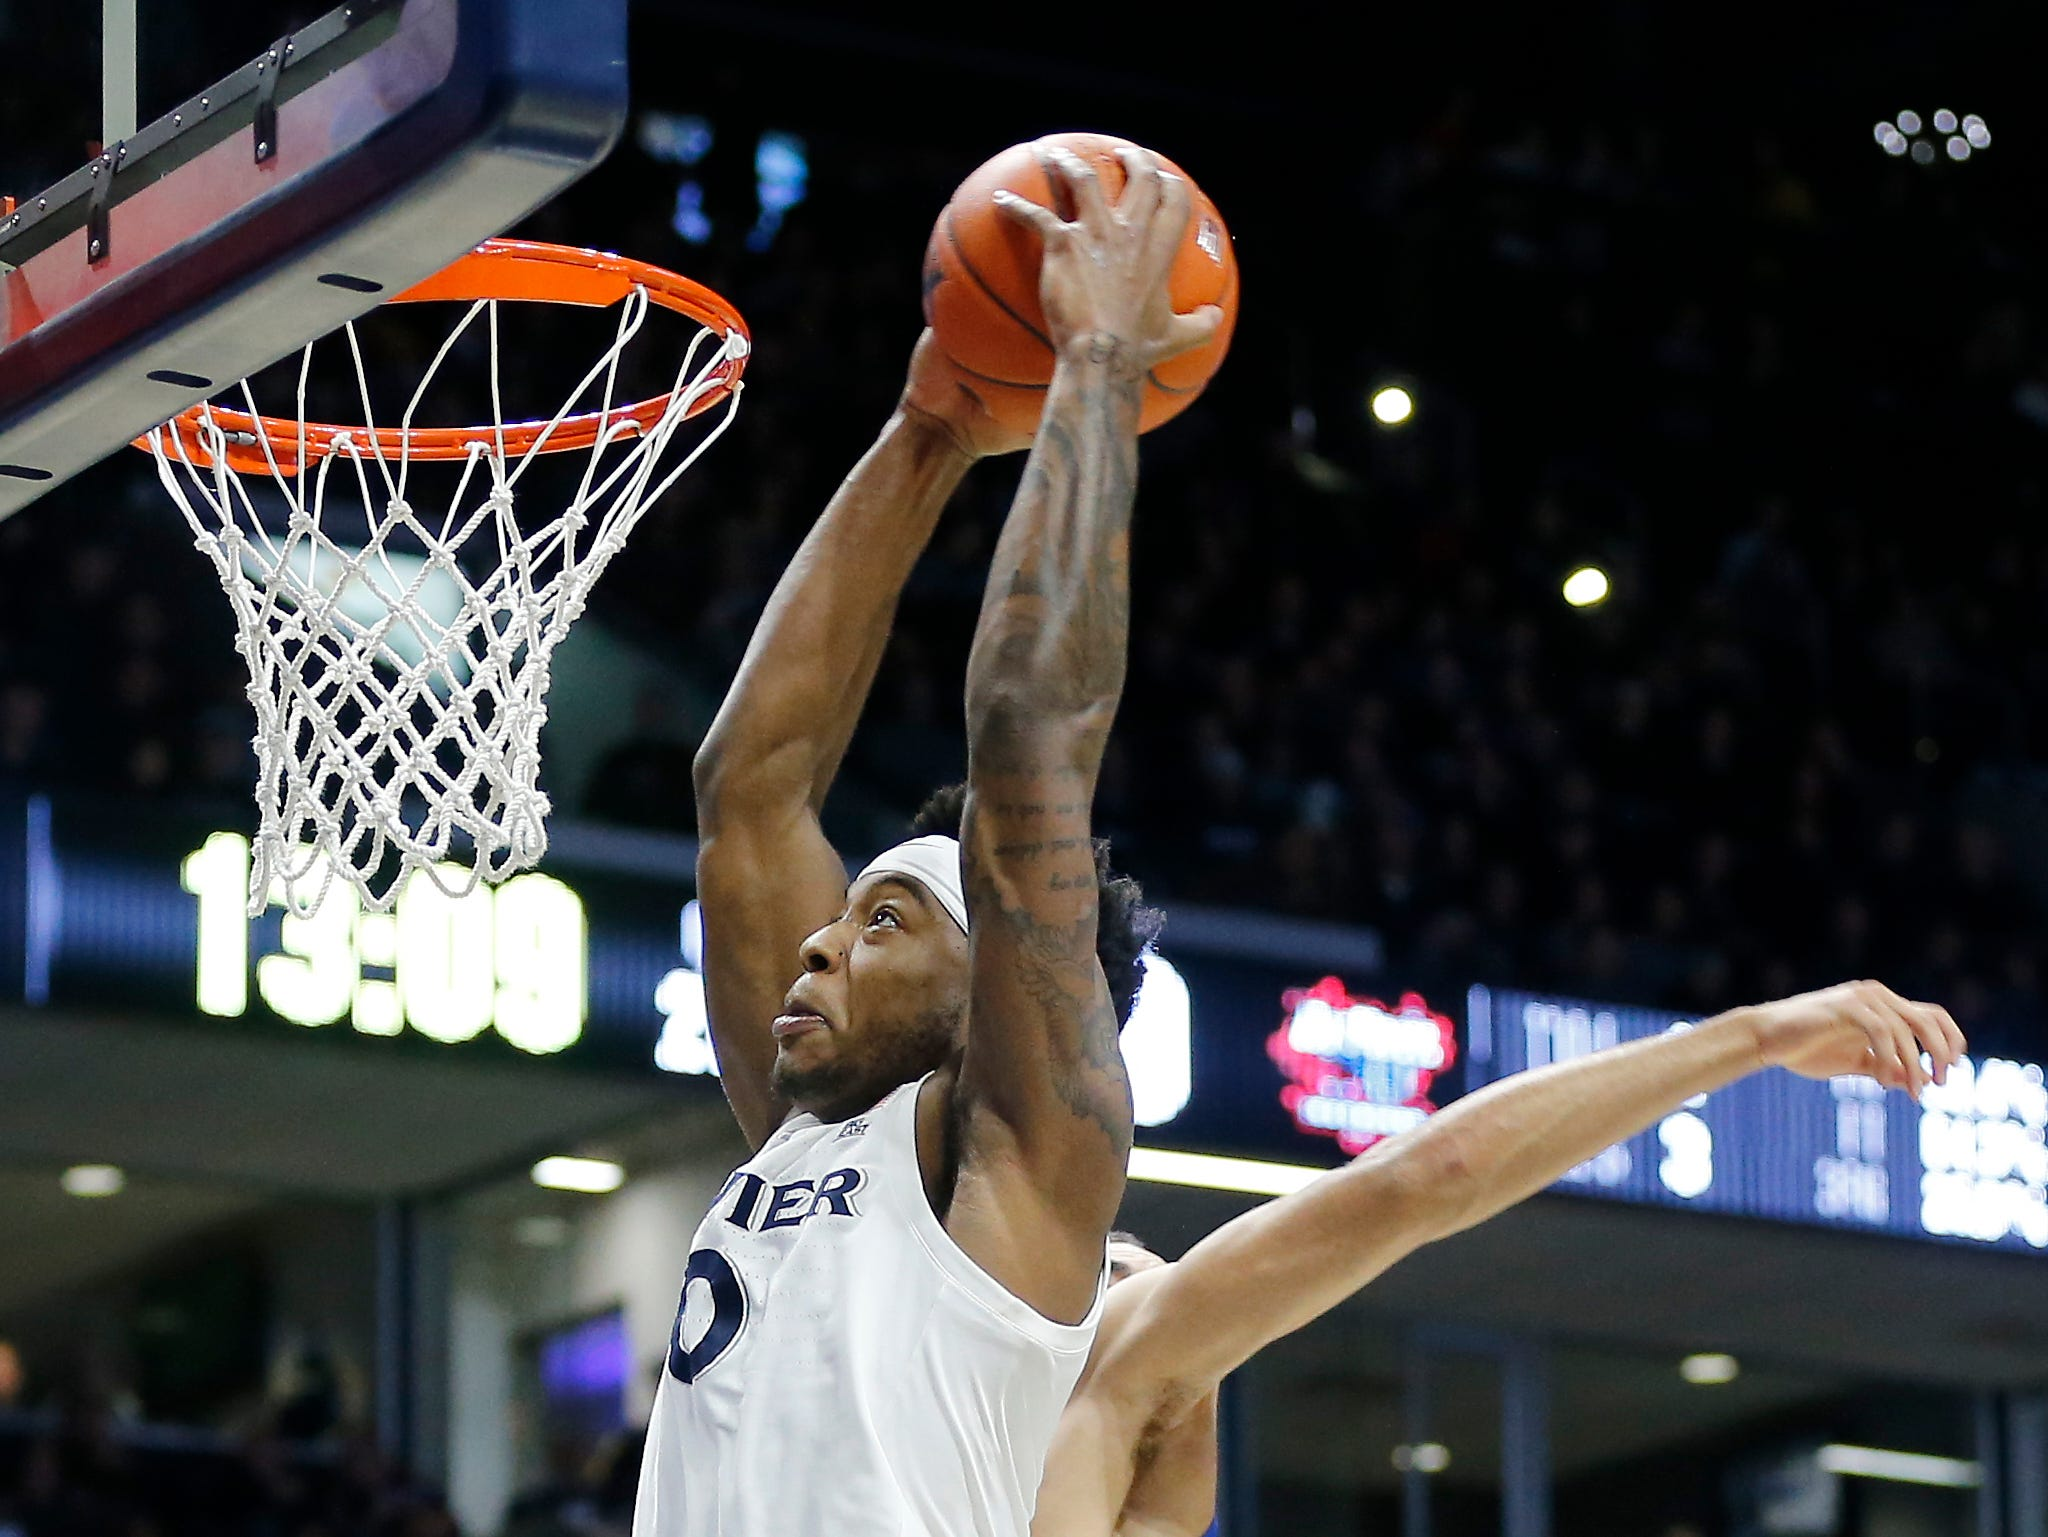 Xavier Musketeers forward Tyrique Jones (0) dunks over DePaul Blue Demons guard Lyrik Shreiner (0) in the second half of the NCAA Big East Conference game between the Xavier Musketeers and the DePaul Blue Demons at the Cintas Center in Cincinnati on Saturday, Feb. 9, 2019. Xavier lost its sixth game in a row, 74-62.